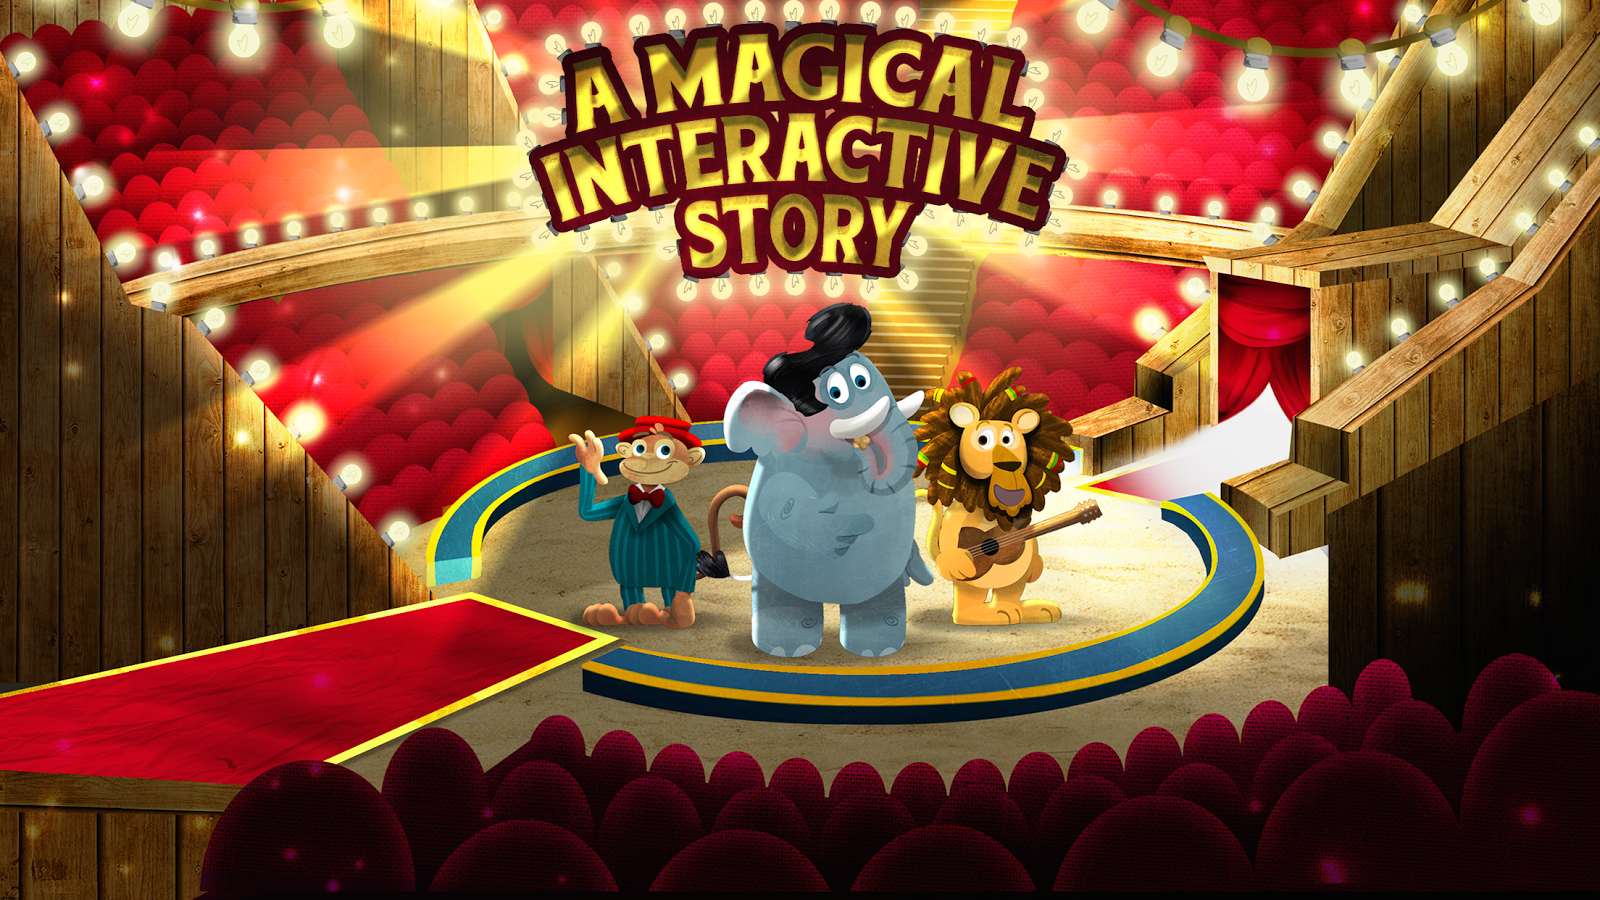 Uncategorized Circus Images For Kids circus games animals kids free android apps on google play screenshot